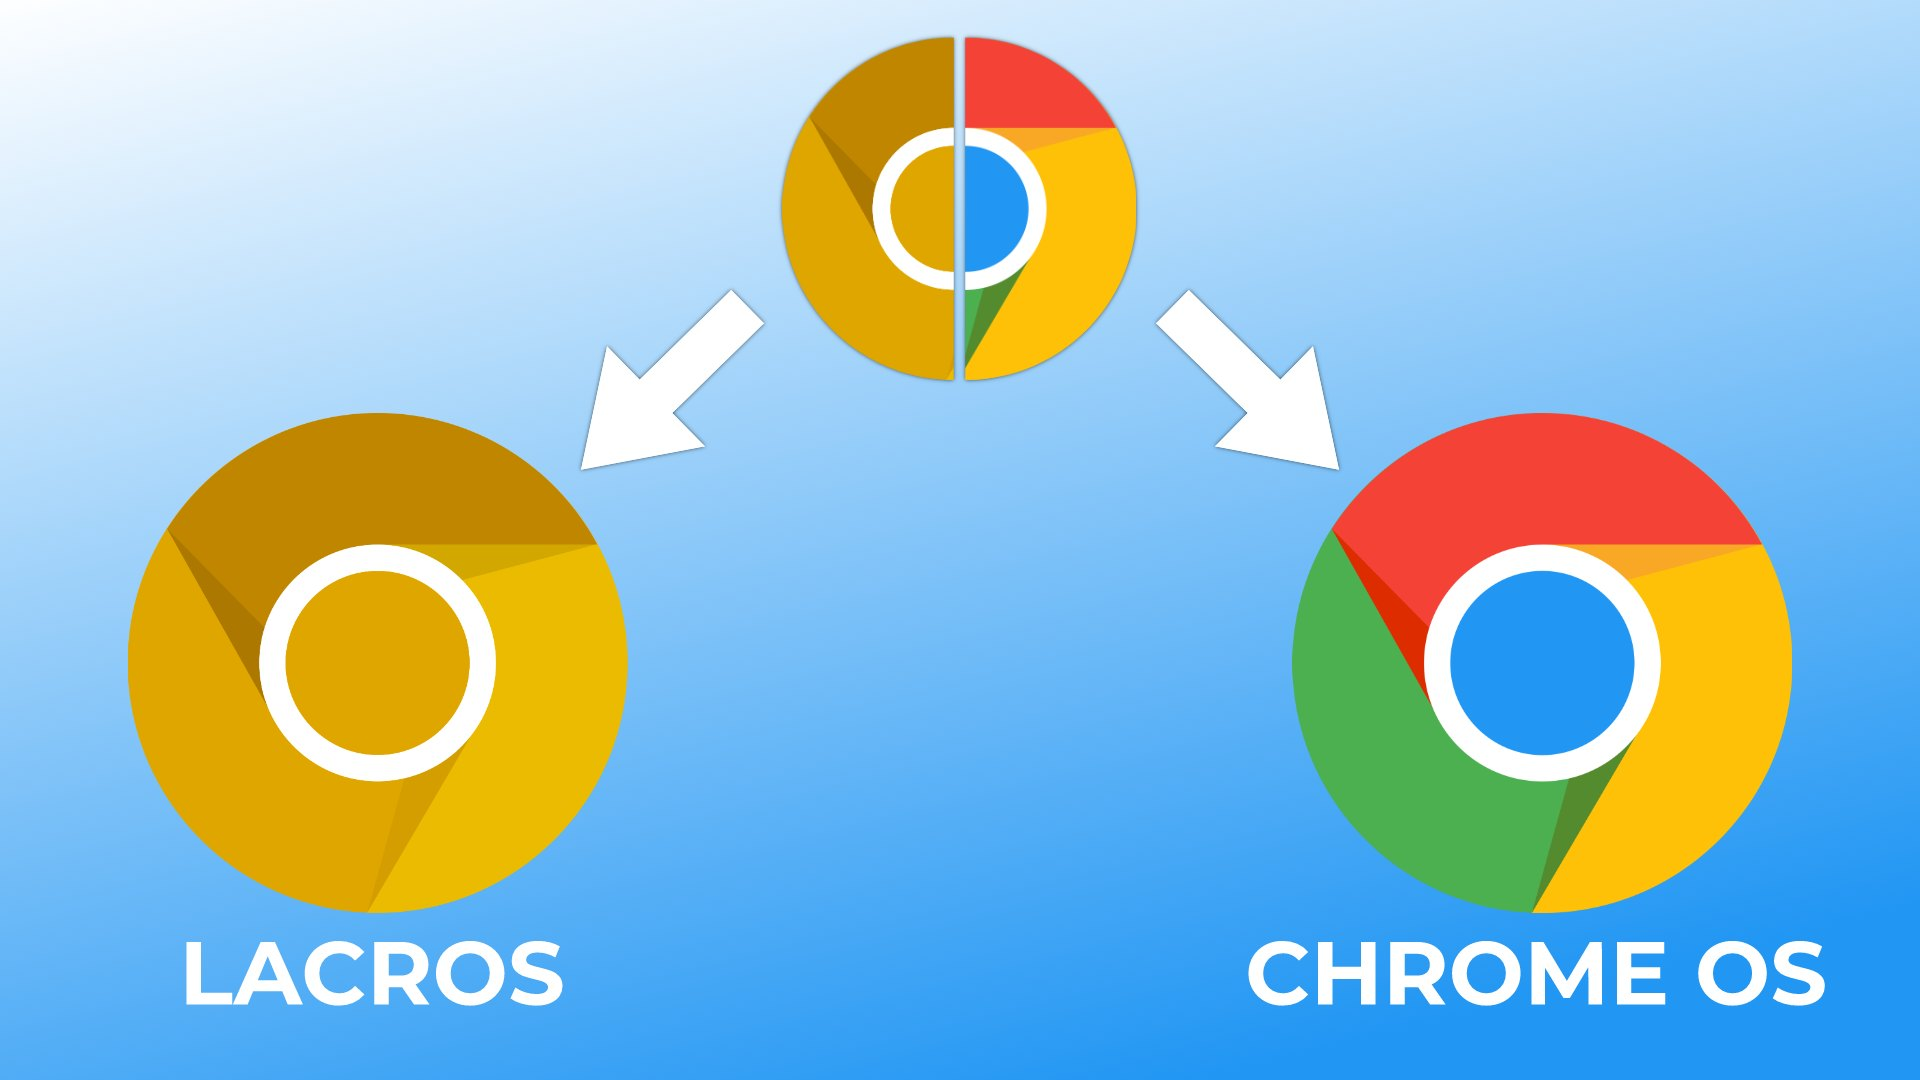 Why I predict Chrome and Chrome OS will split with the roll out of version 94